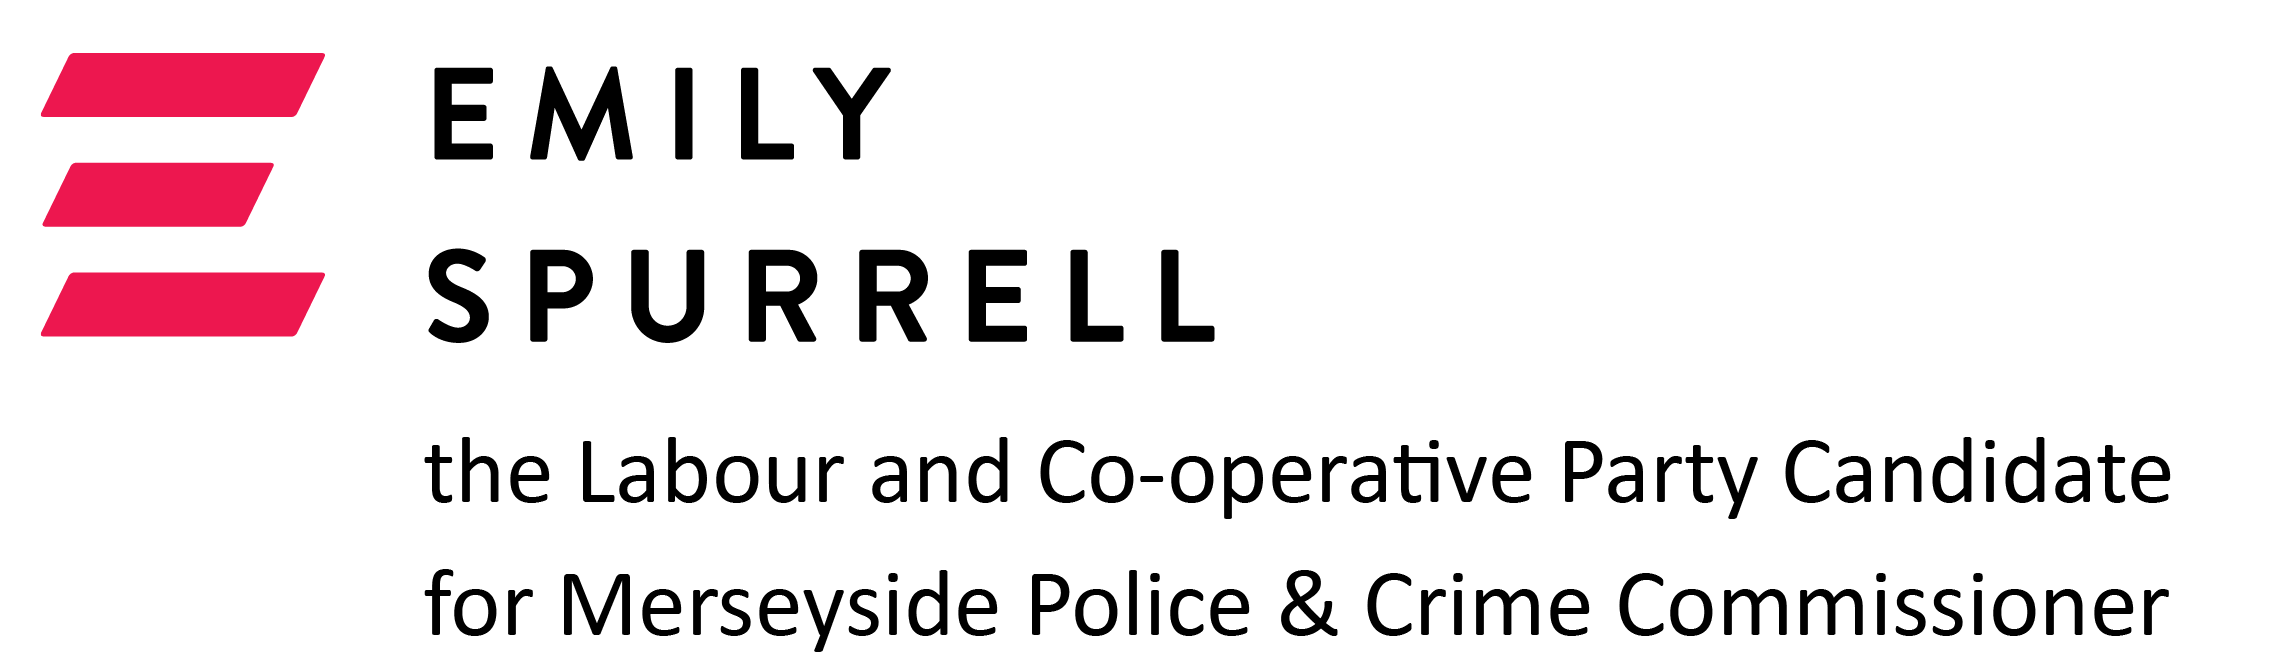 Emily Spurrell - the Labour and Co-operative Party Candidate for Merseyside Police and Crime Commissioner